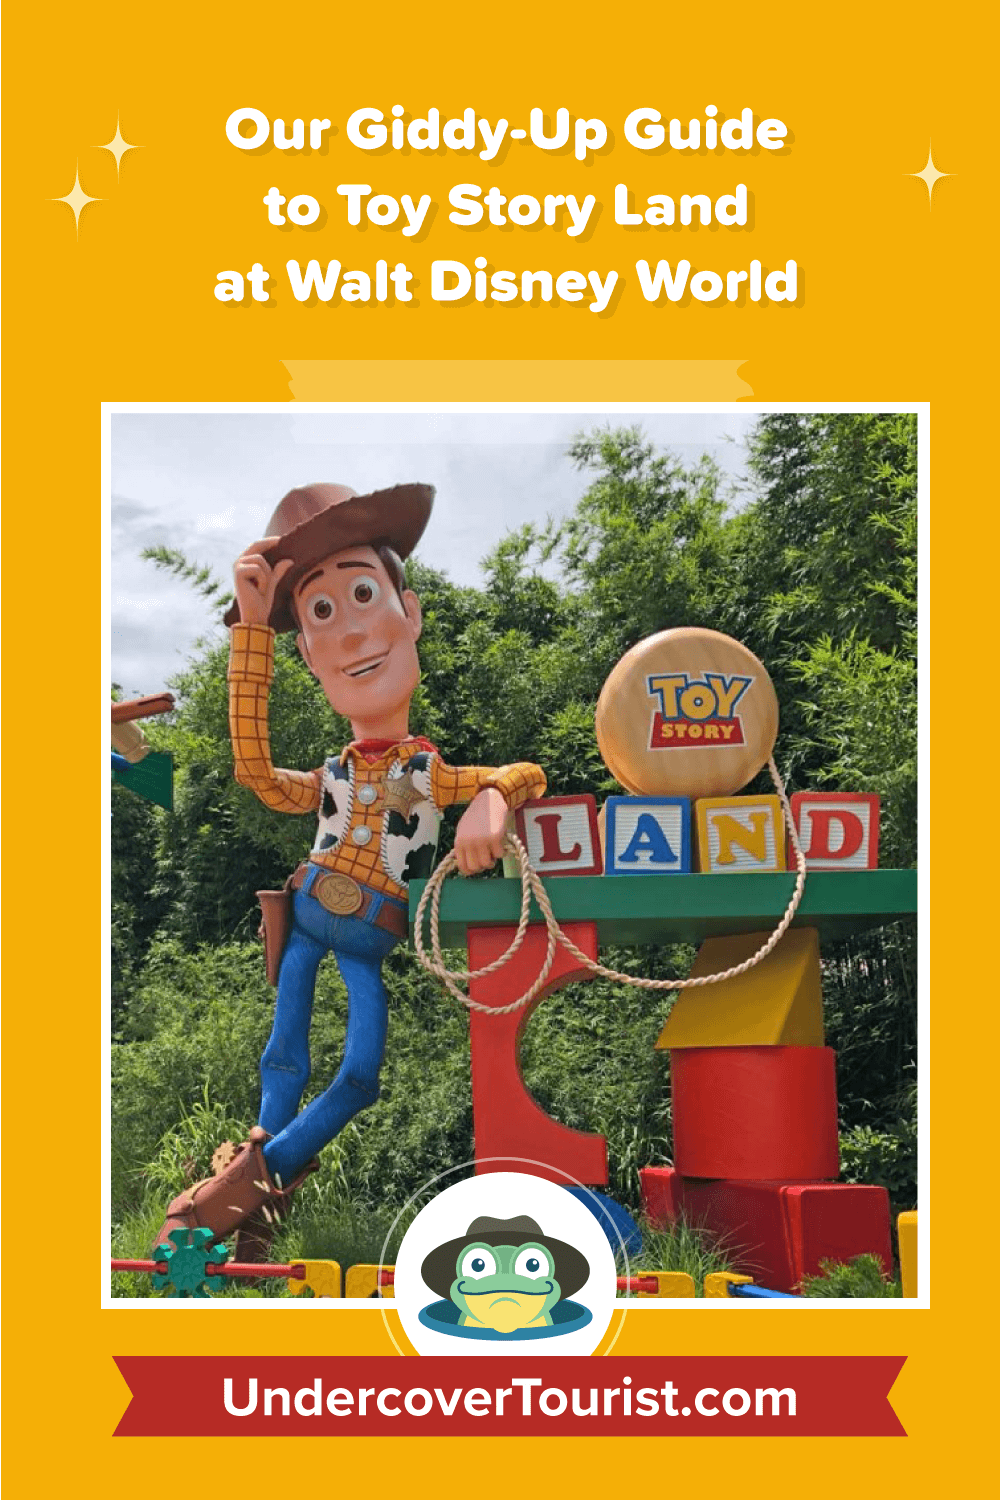 Guide to Toy Story Land - Pinterest